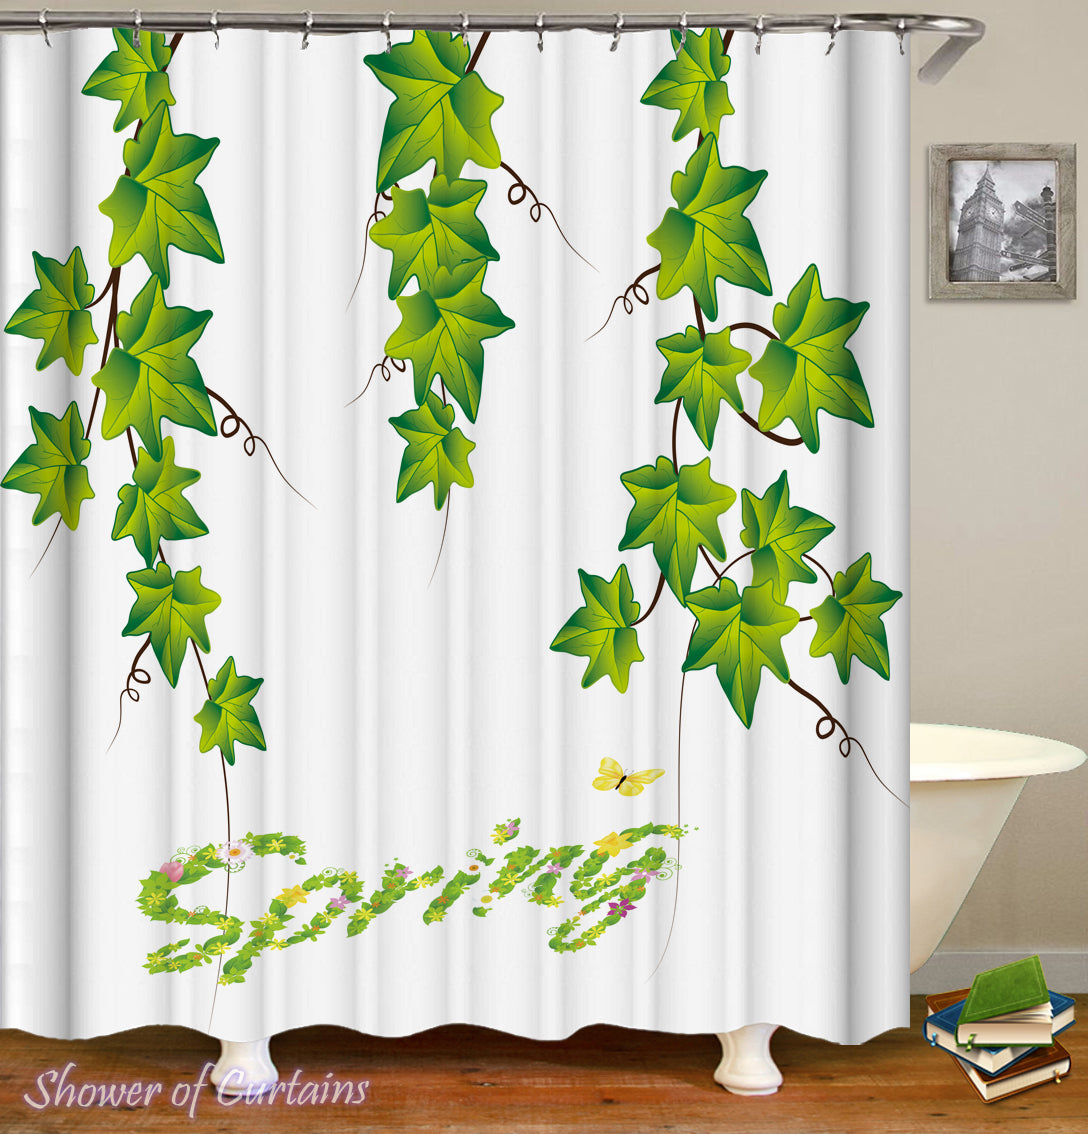 Shower Curtains | Spring Vine Leaves – Shower of Curtains